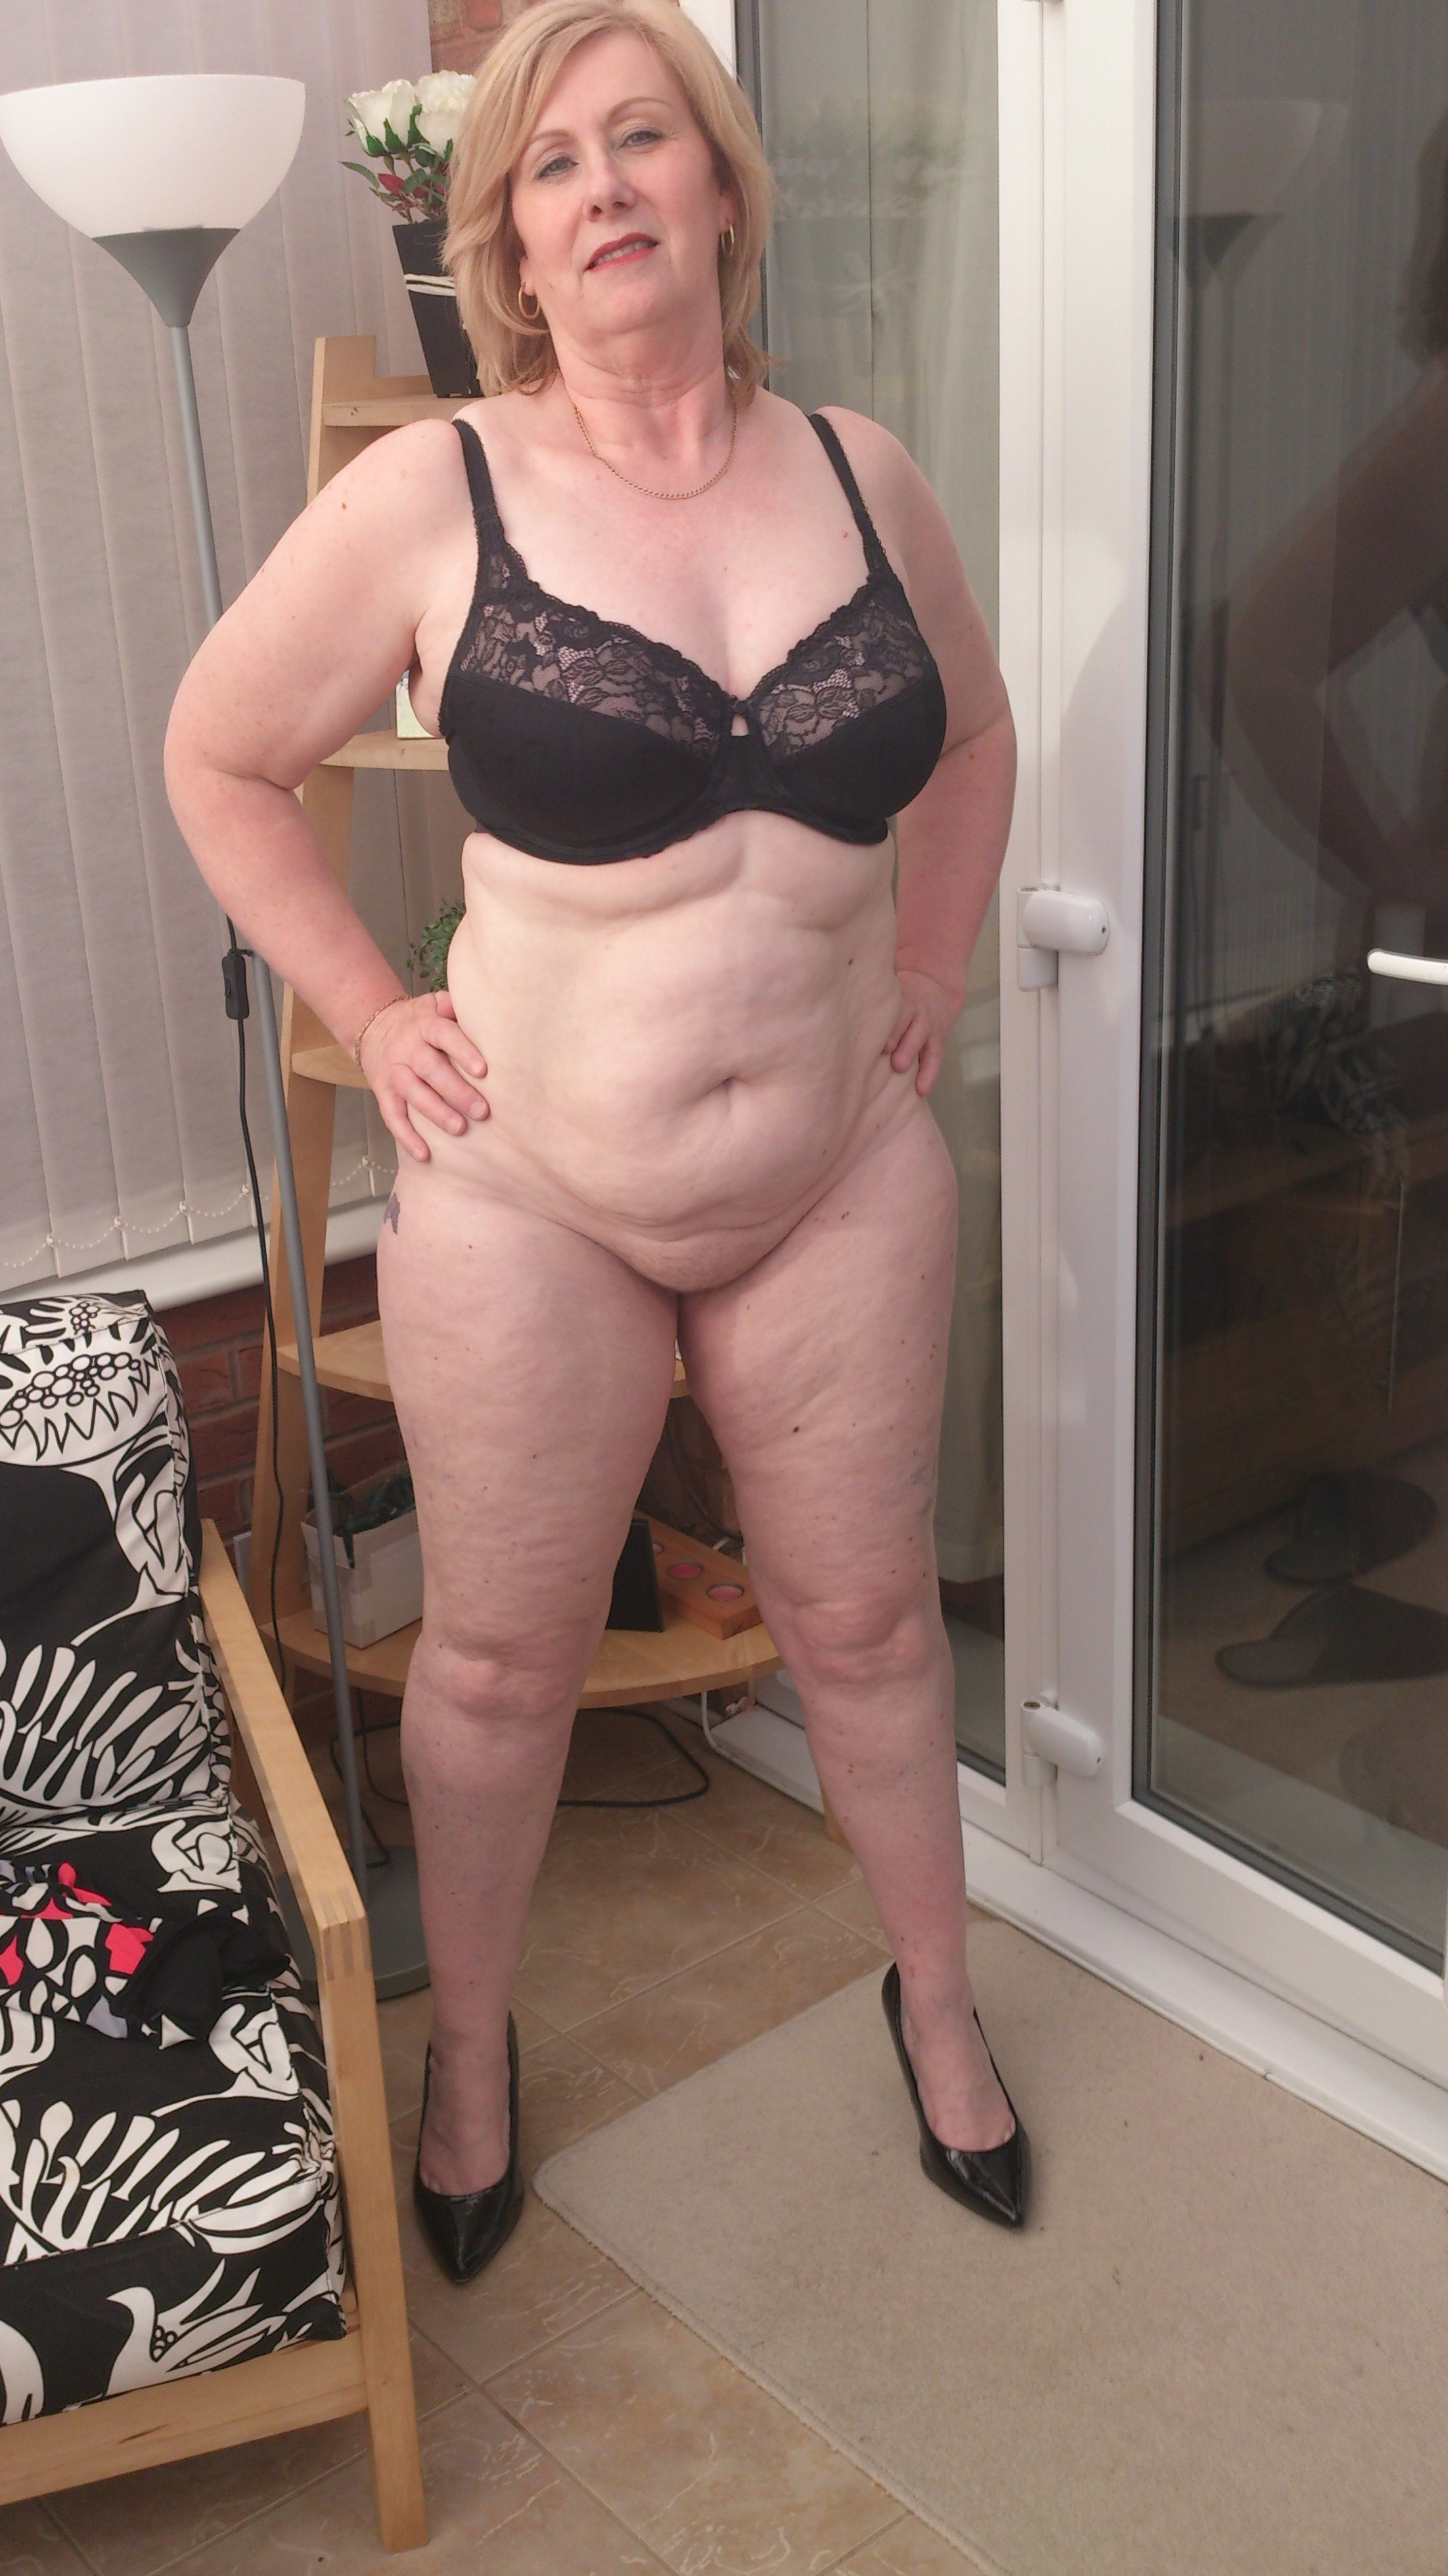 Milfs giting fucked out side